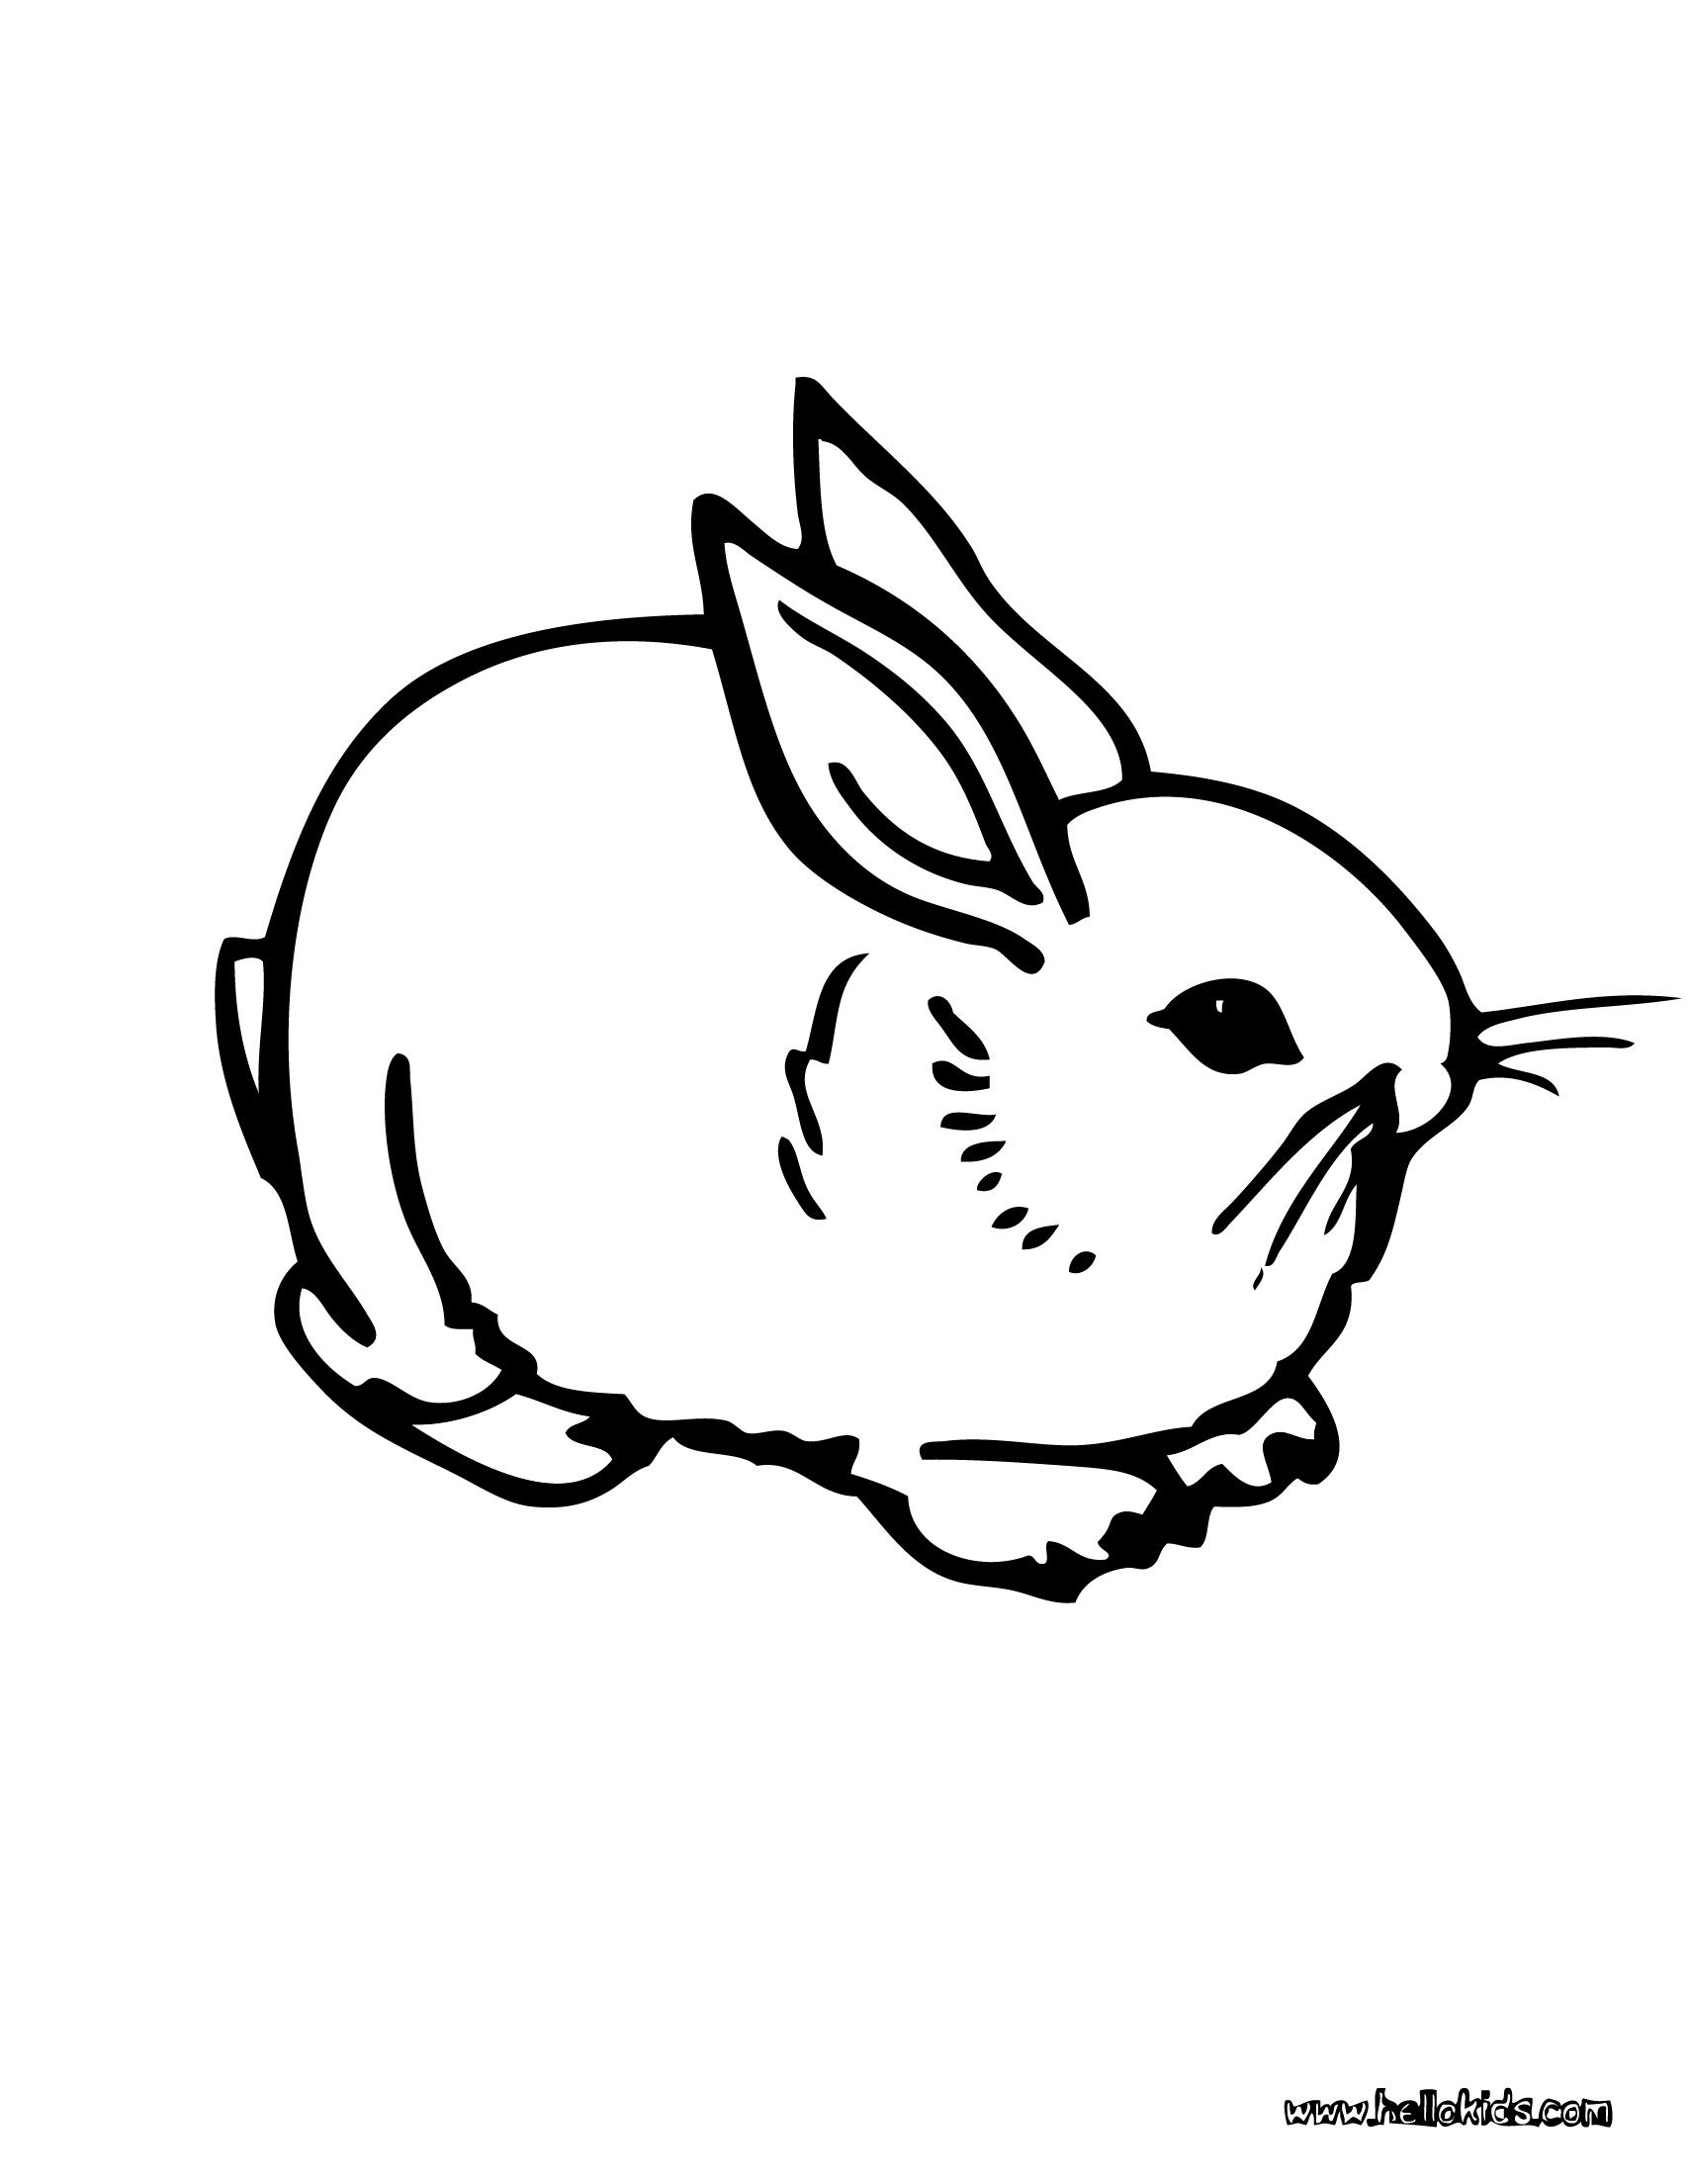 Domestic Rabbit coloring page. Enjoy the wonderful world of coloring ...